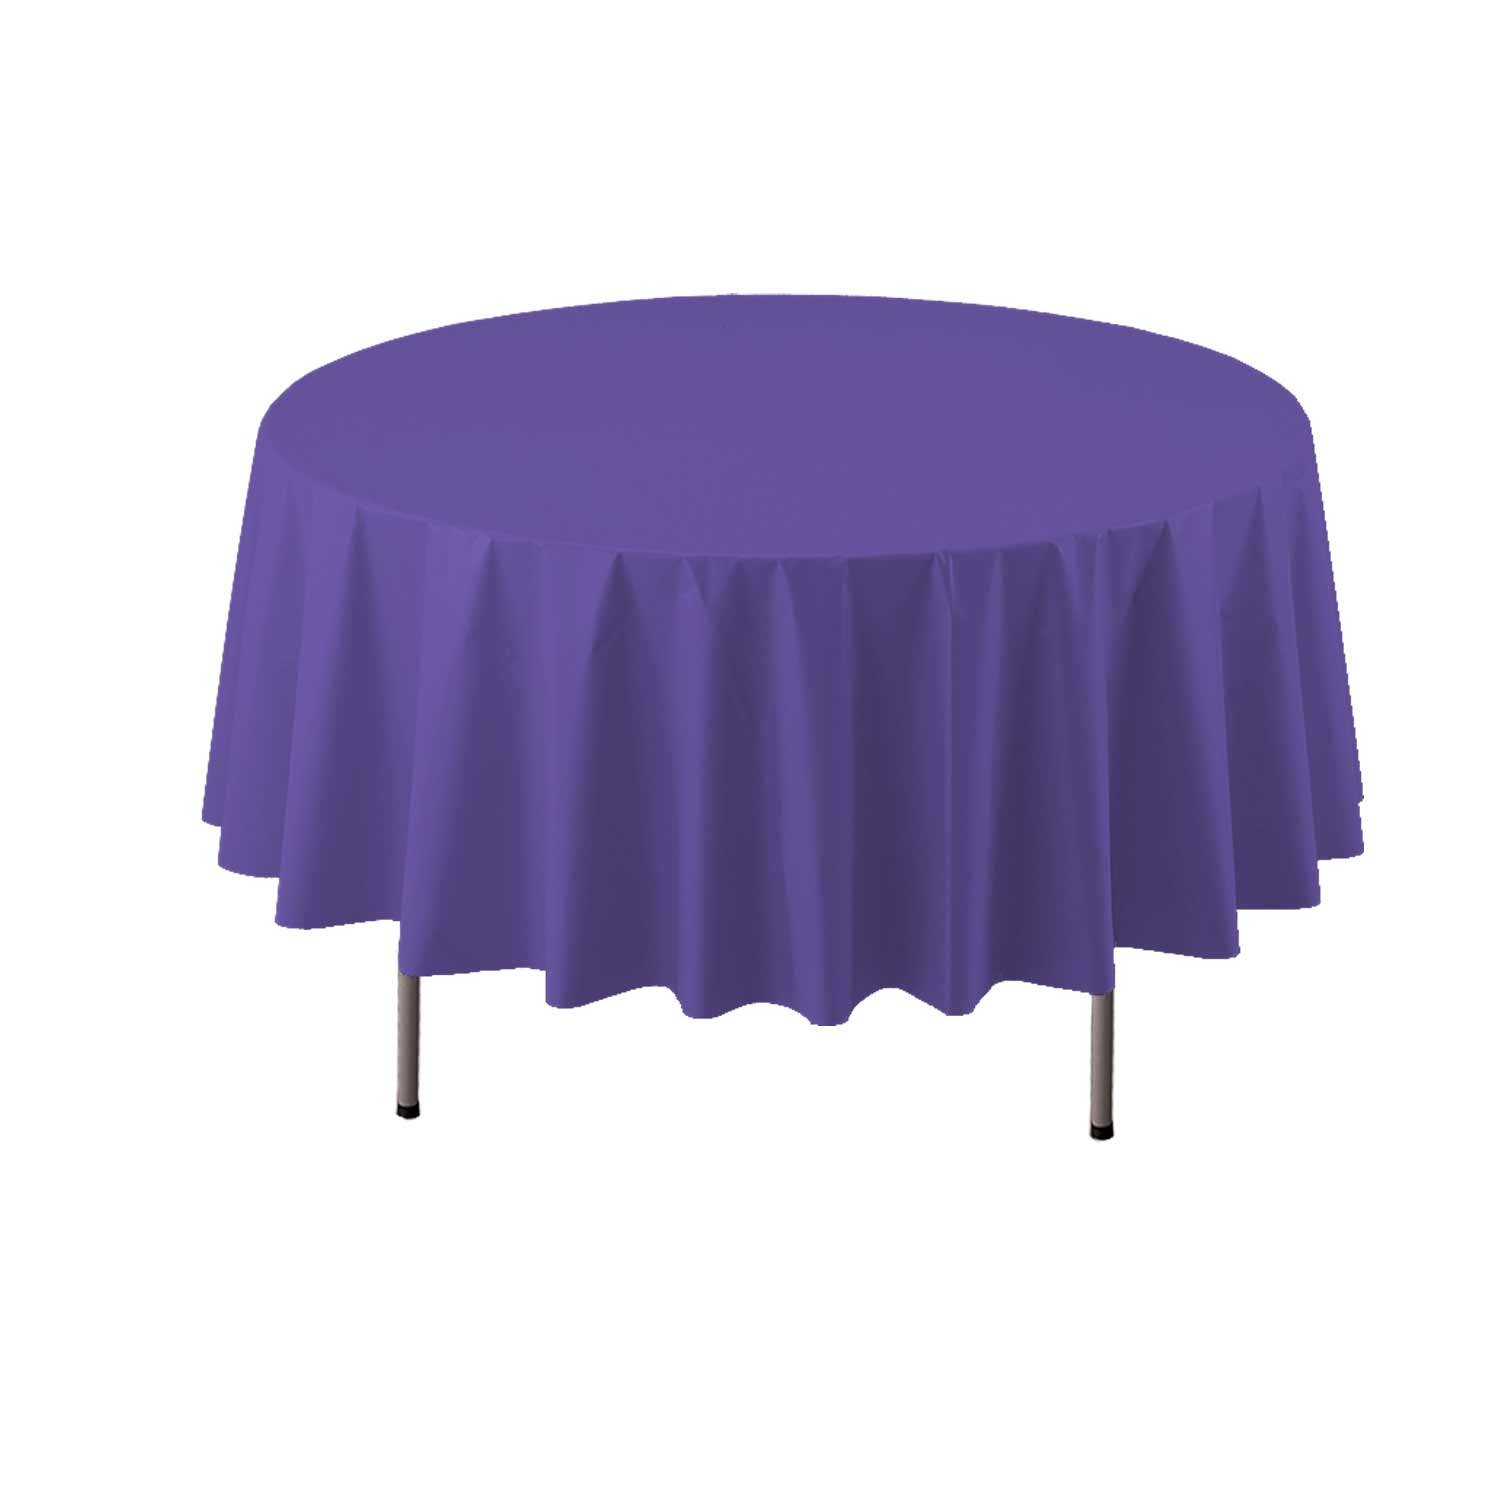 Red NW Enterprises Toys 84RD Party Essentials Heavy Duty 84 Round Plastic Table Cover Available in 22 Colors